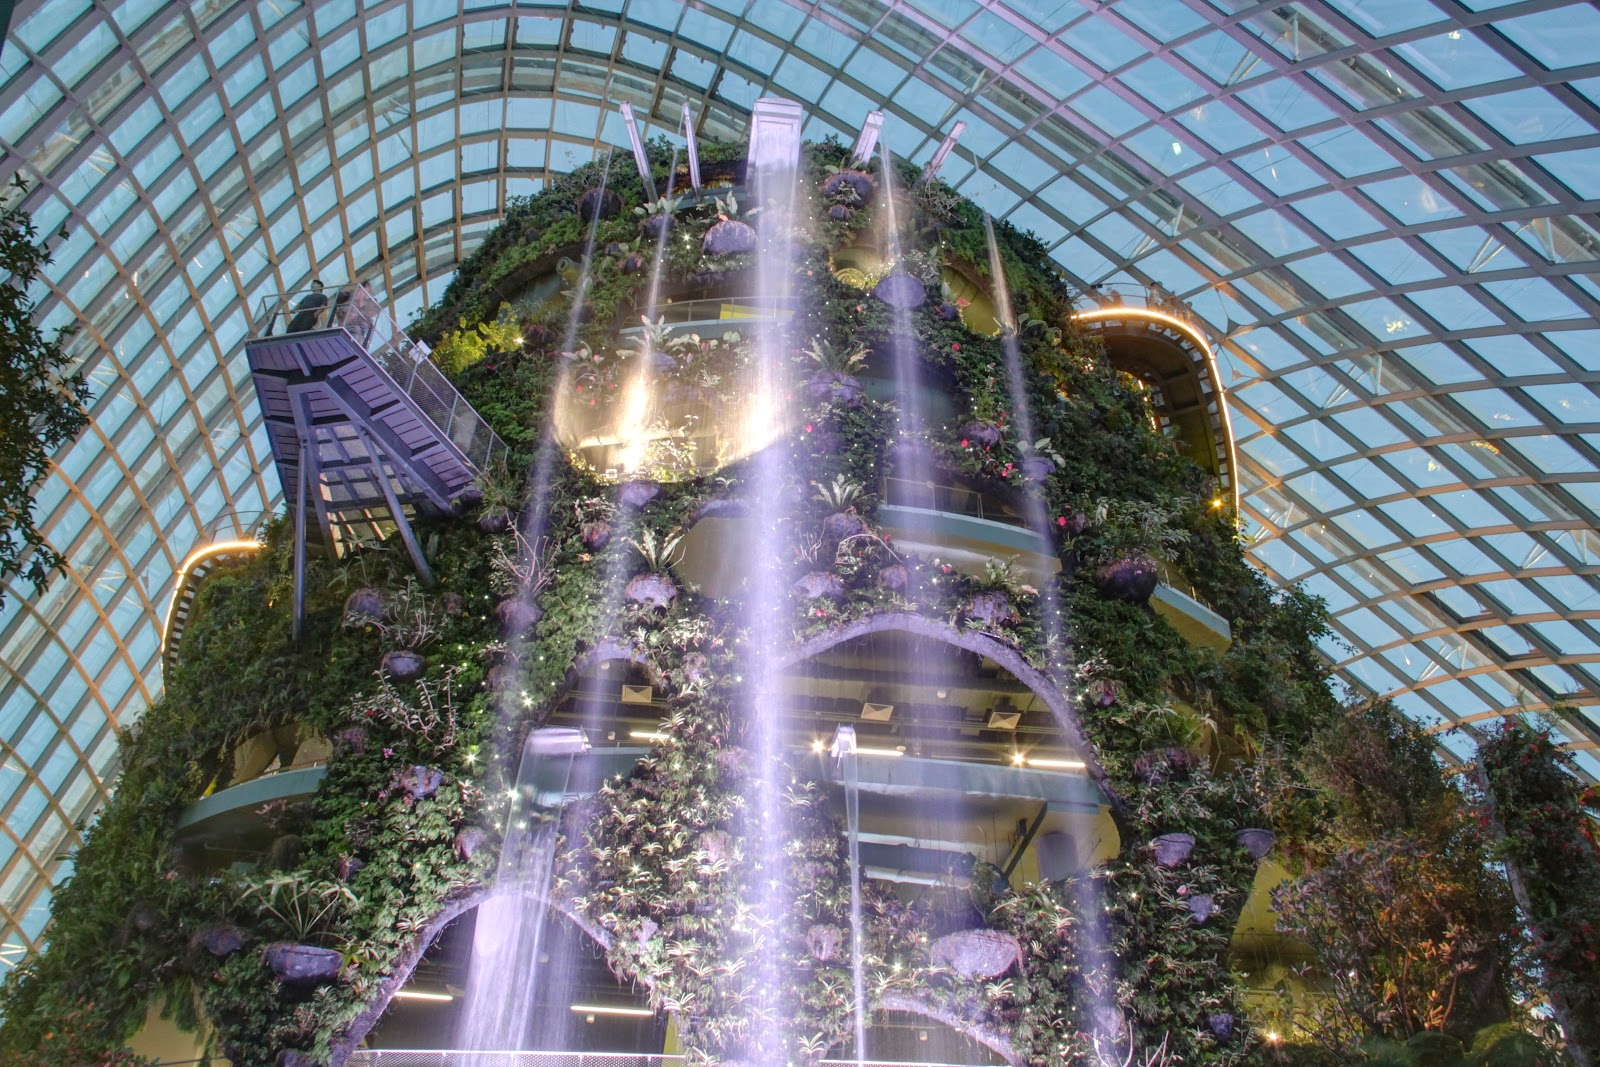 Have You Visited The Cloud Forest At Gardens By The Bay